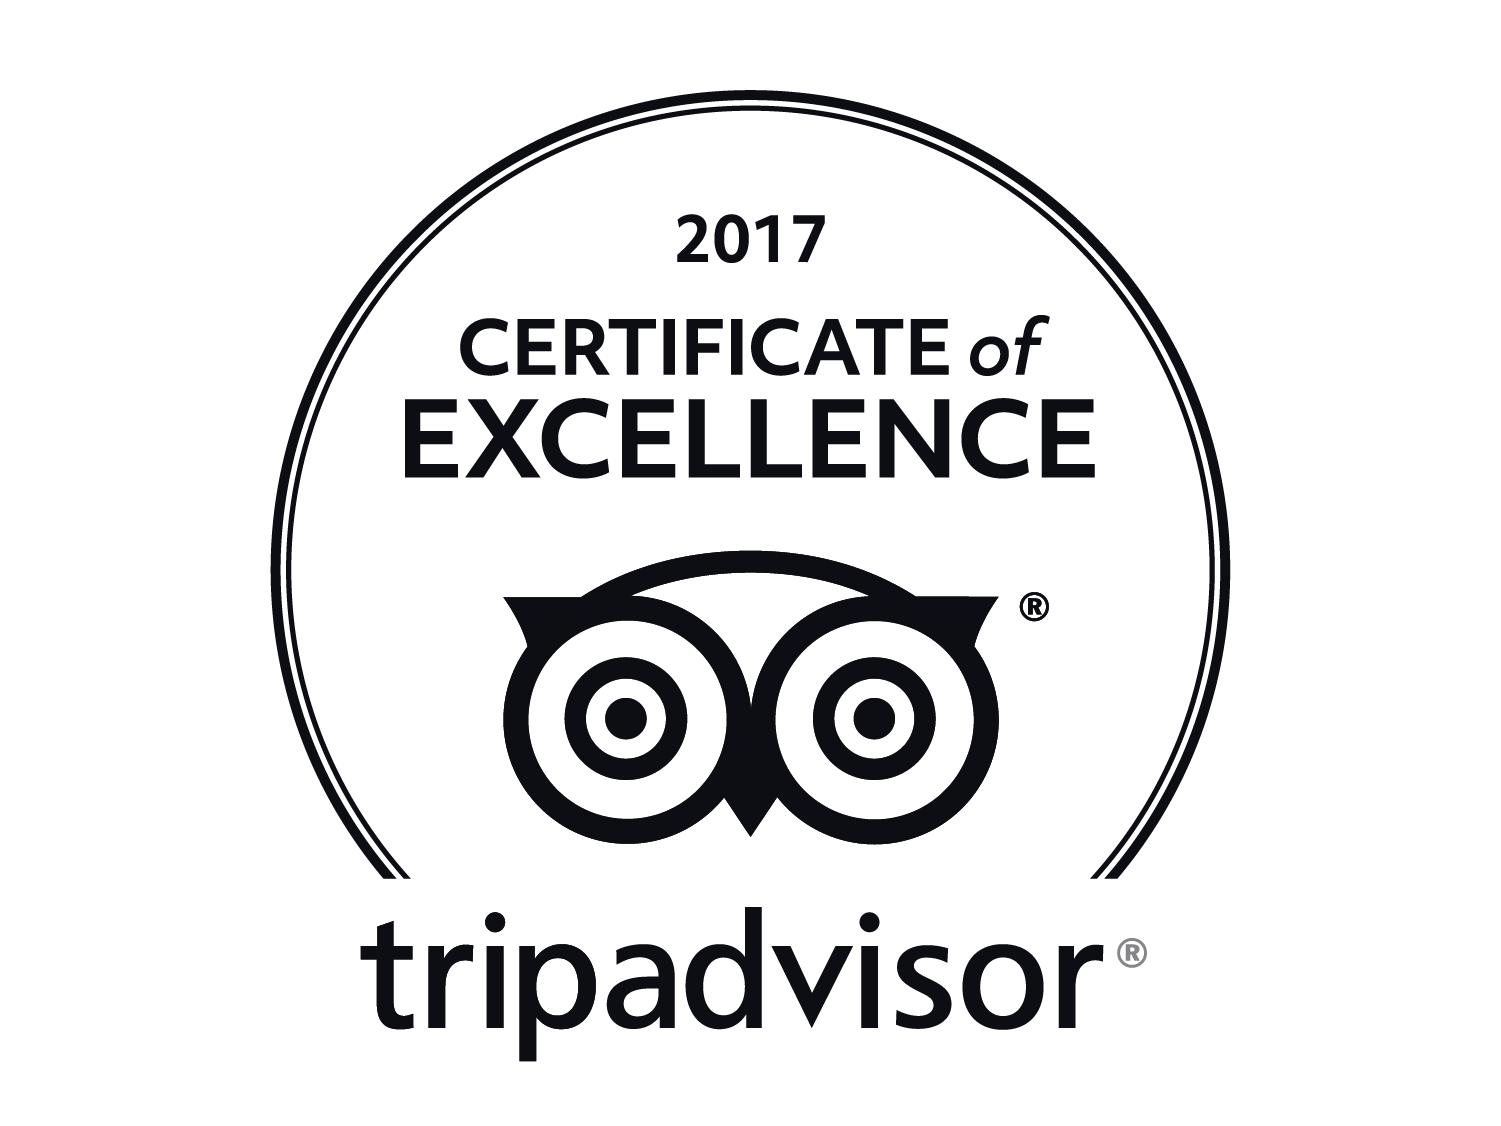 TRIP ADVISOR CERTIFICATE OF EXCELLENCE...